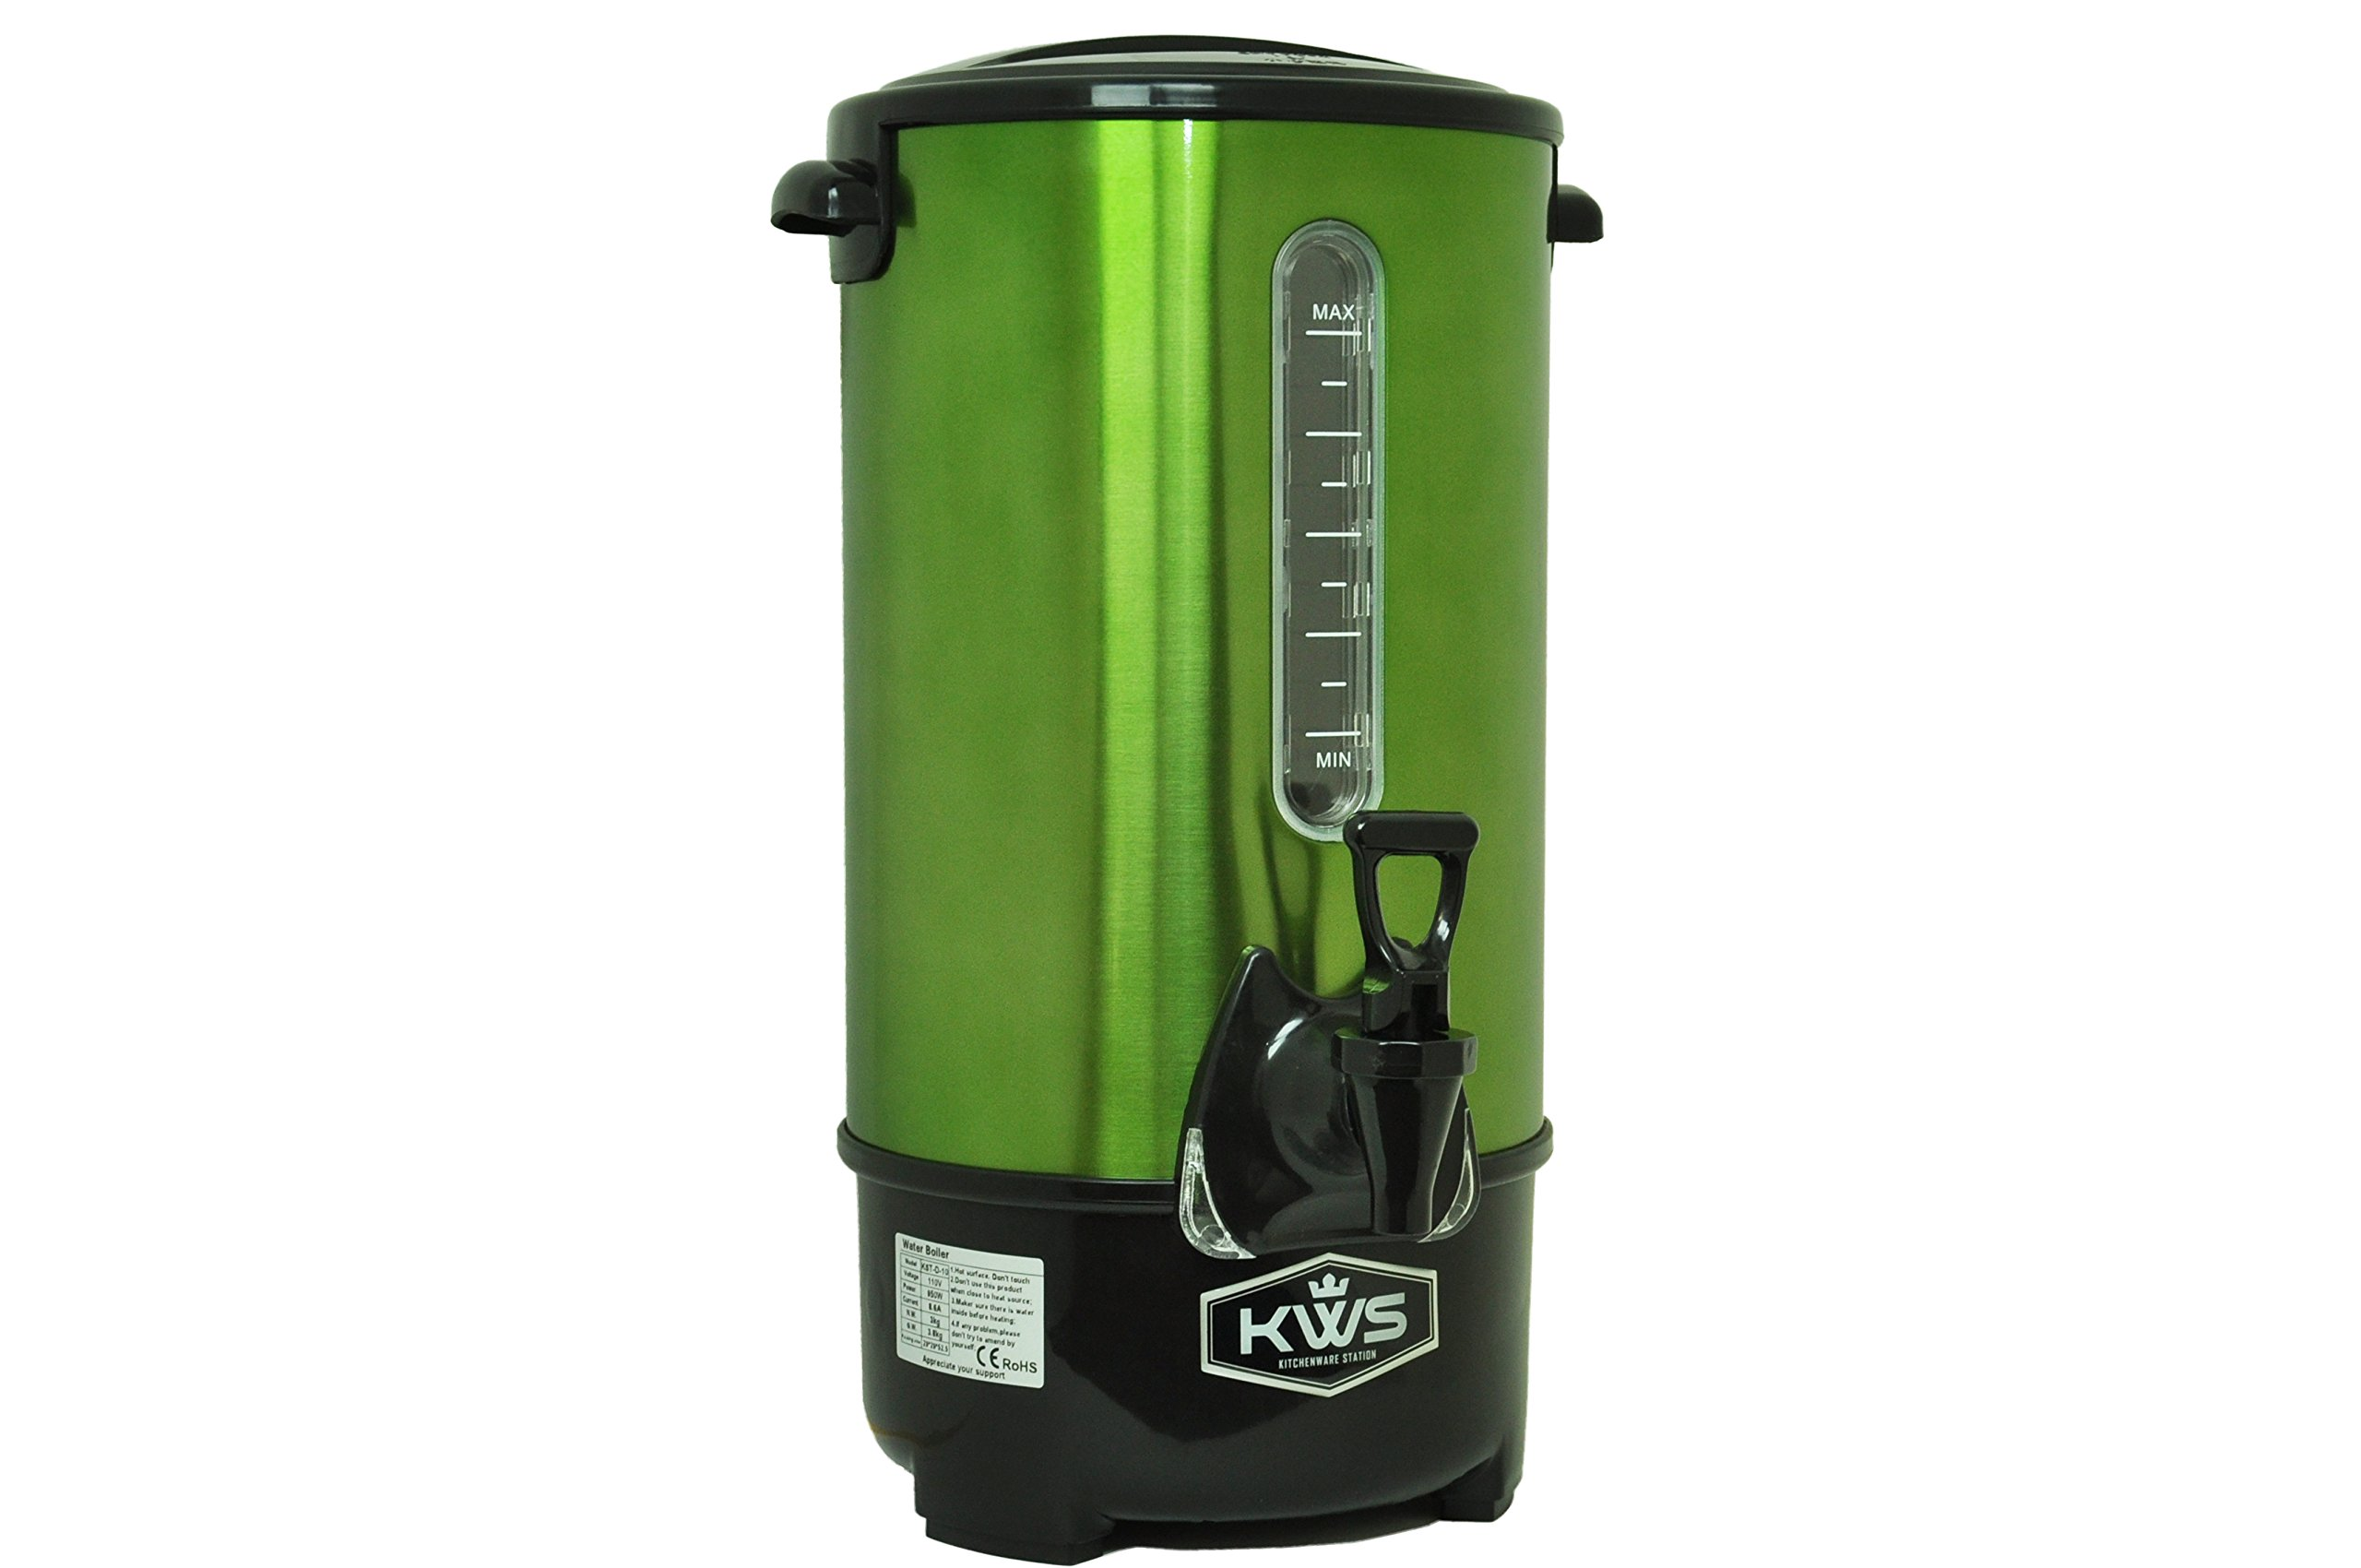 KWS WB-10 9.7L/41Cups Commercial Heat Insulated Water Boiler and Warmer Stainless Steel (Green) by KitchenWare Station (Image #2)